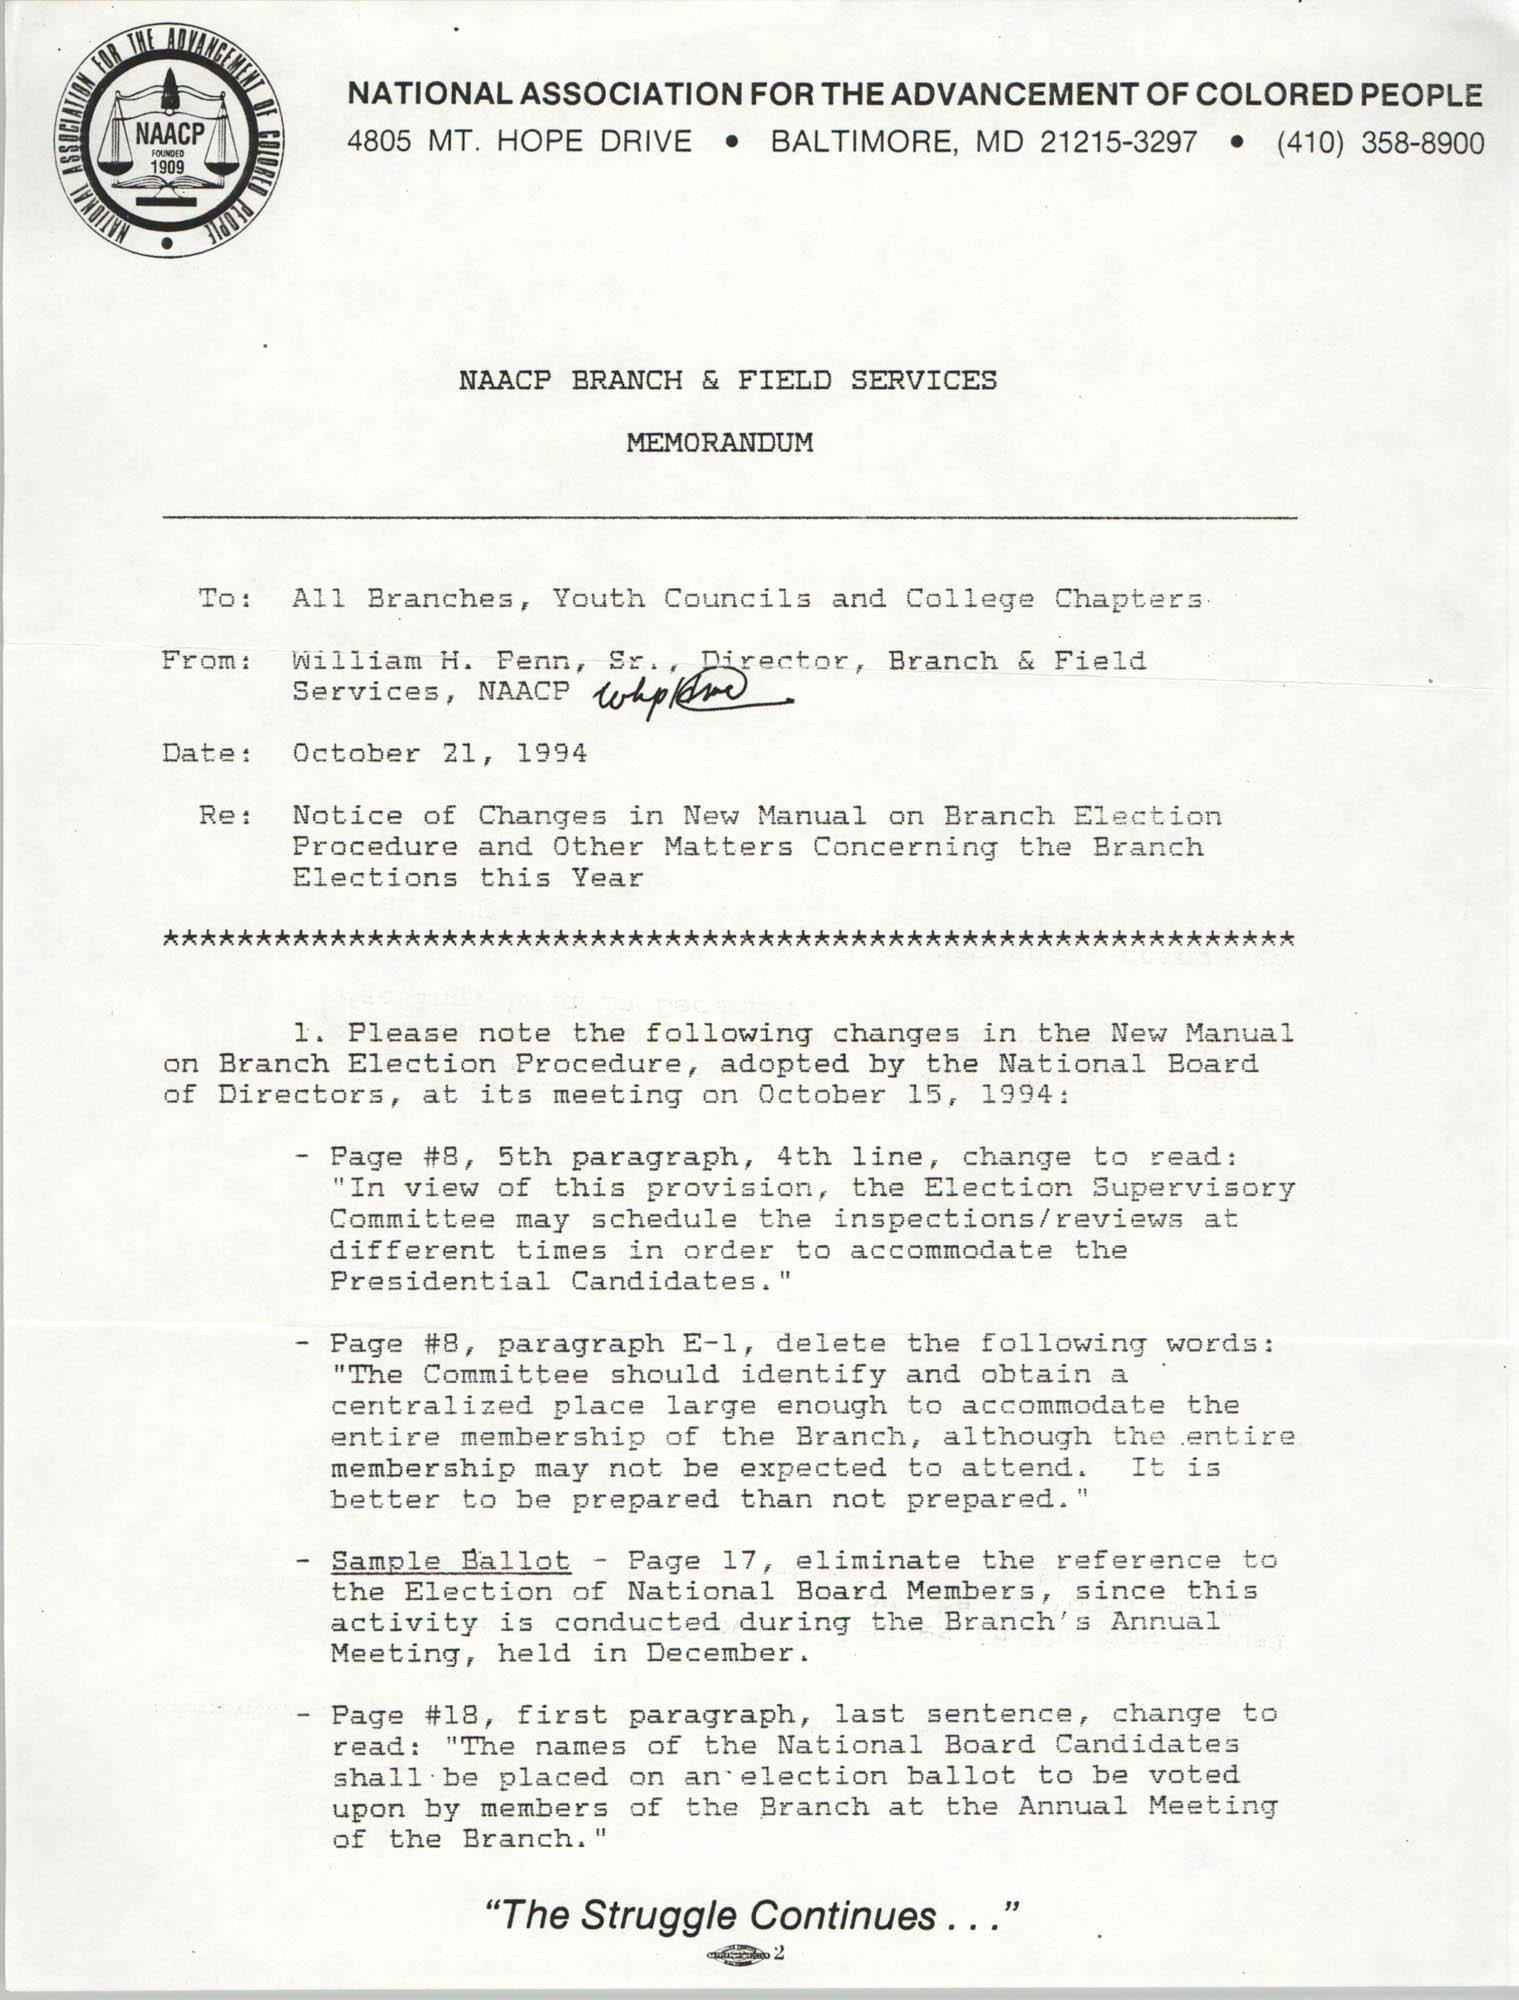 NAACP Branch and Field Services Memorandum, October 21, 1994